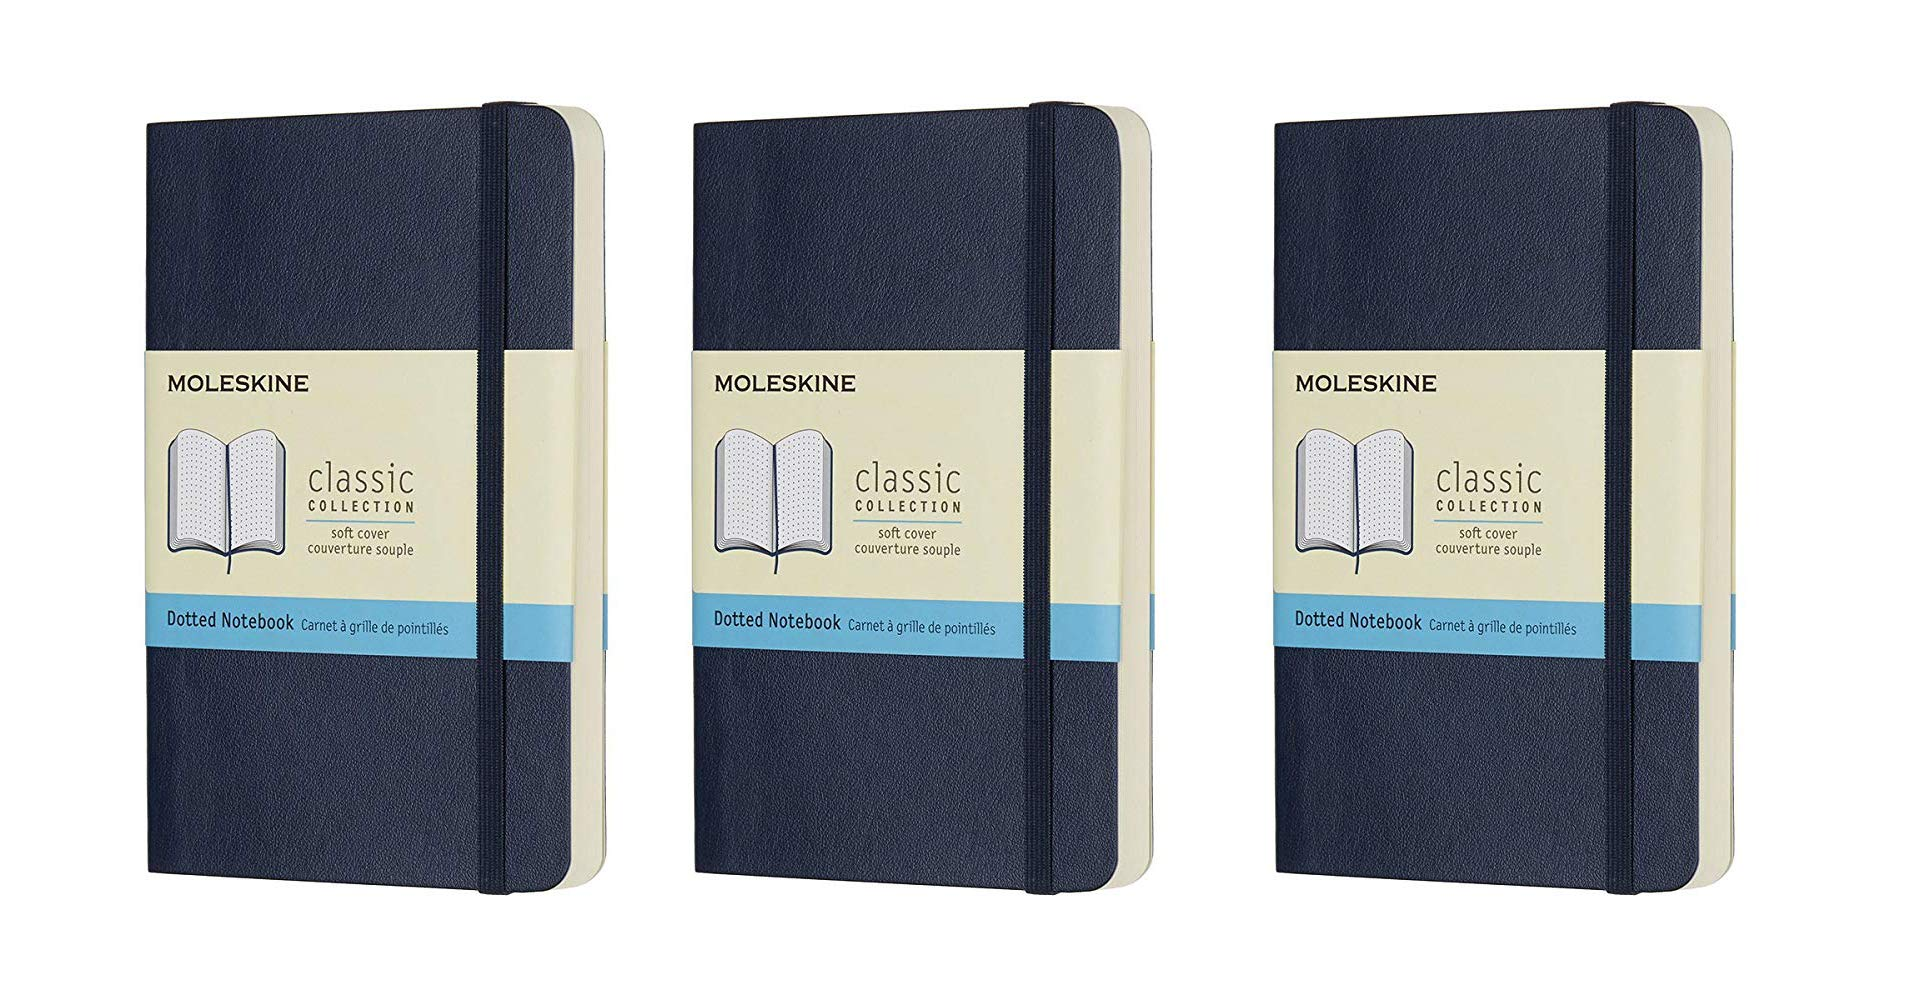 Moleskine Classic Colored Notebook, Pocket, Dotted, Sapphire Blue, Soft Cover (3.5 x 5.5) Pack of 3